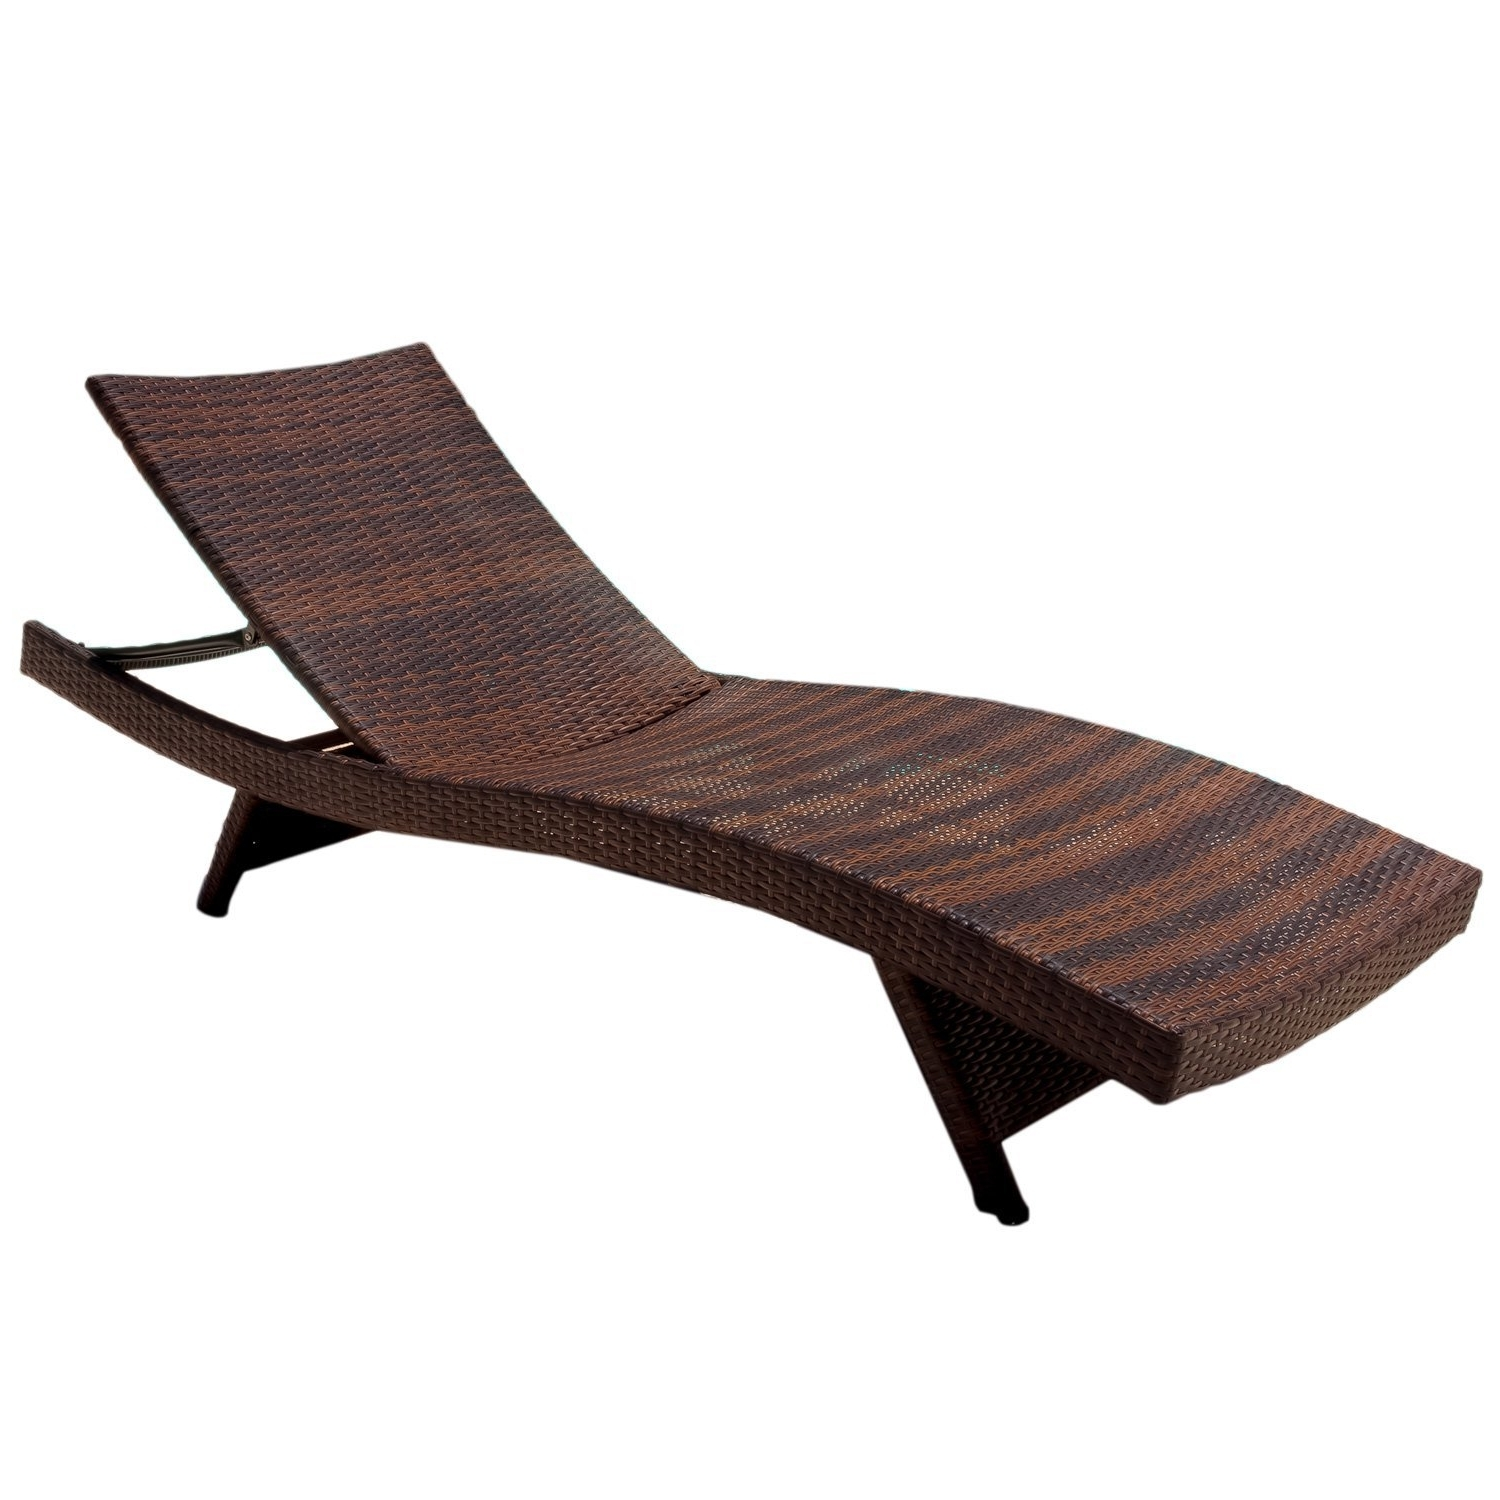 Most Recent Amazon : Best Selling Outdoor Adjustable Wicker Lounge, Brown In Contemporary Outdoor Chaise Lounge Chairs (View 10 of 15)